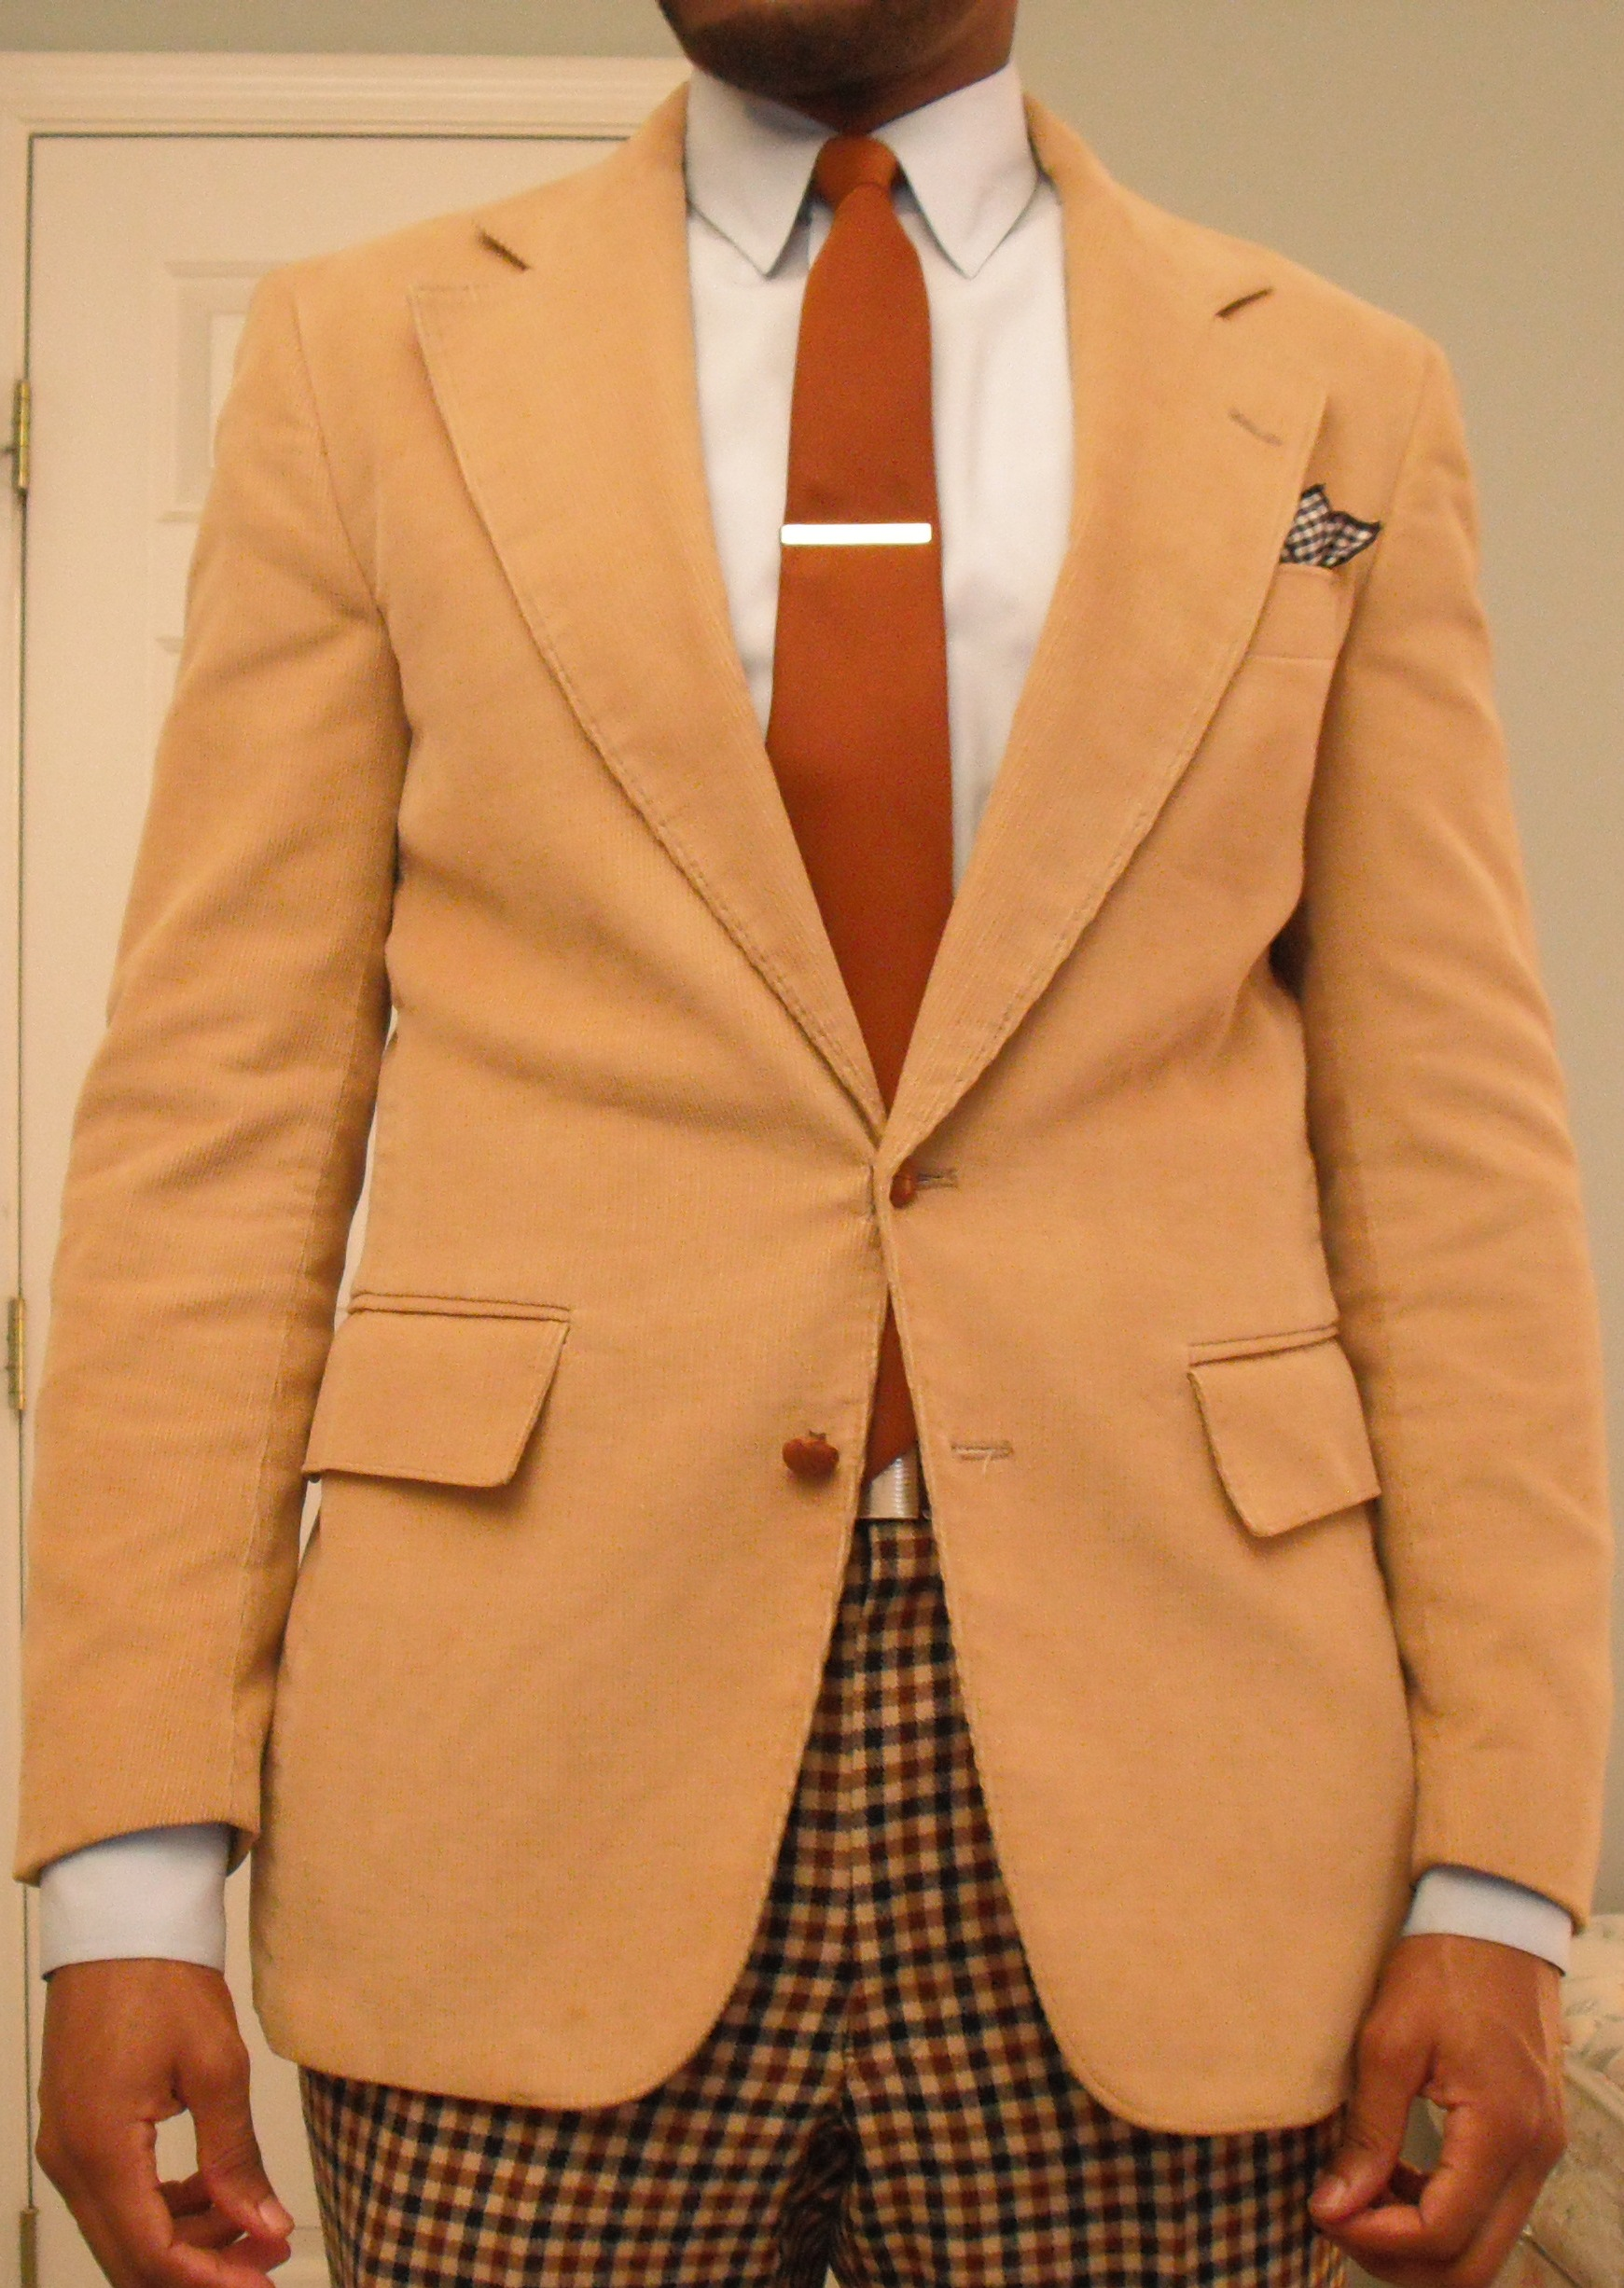 Vintage Narrow Rust Colored Necktie Was A Thrifting Find Tie Bar Is From Banana Republic